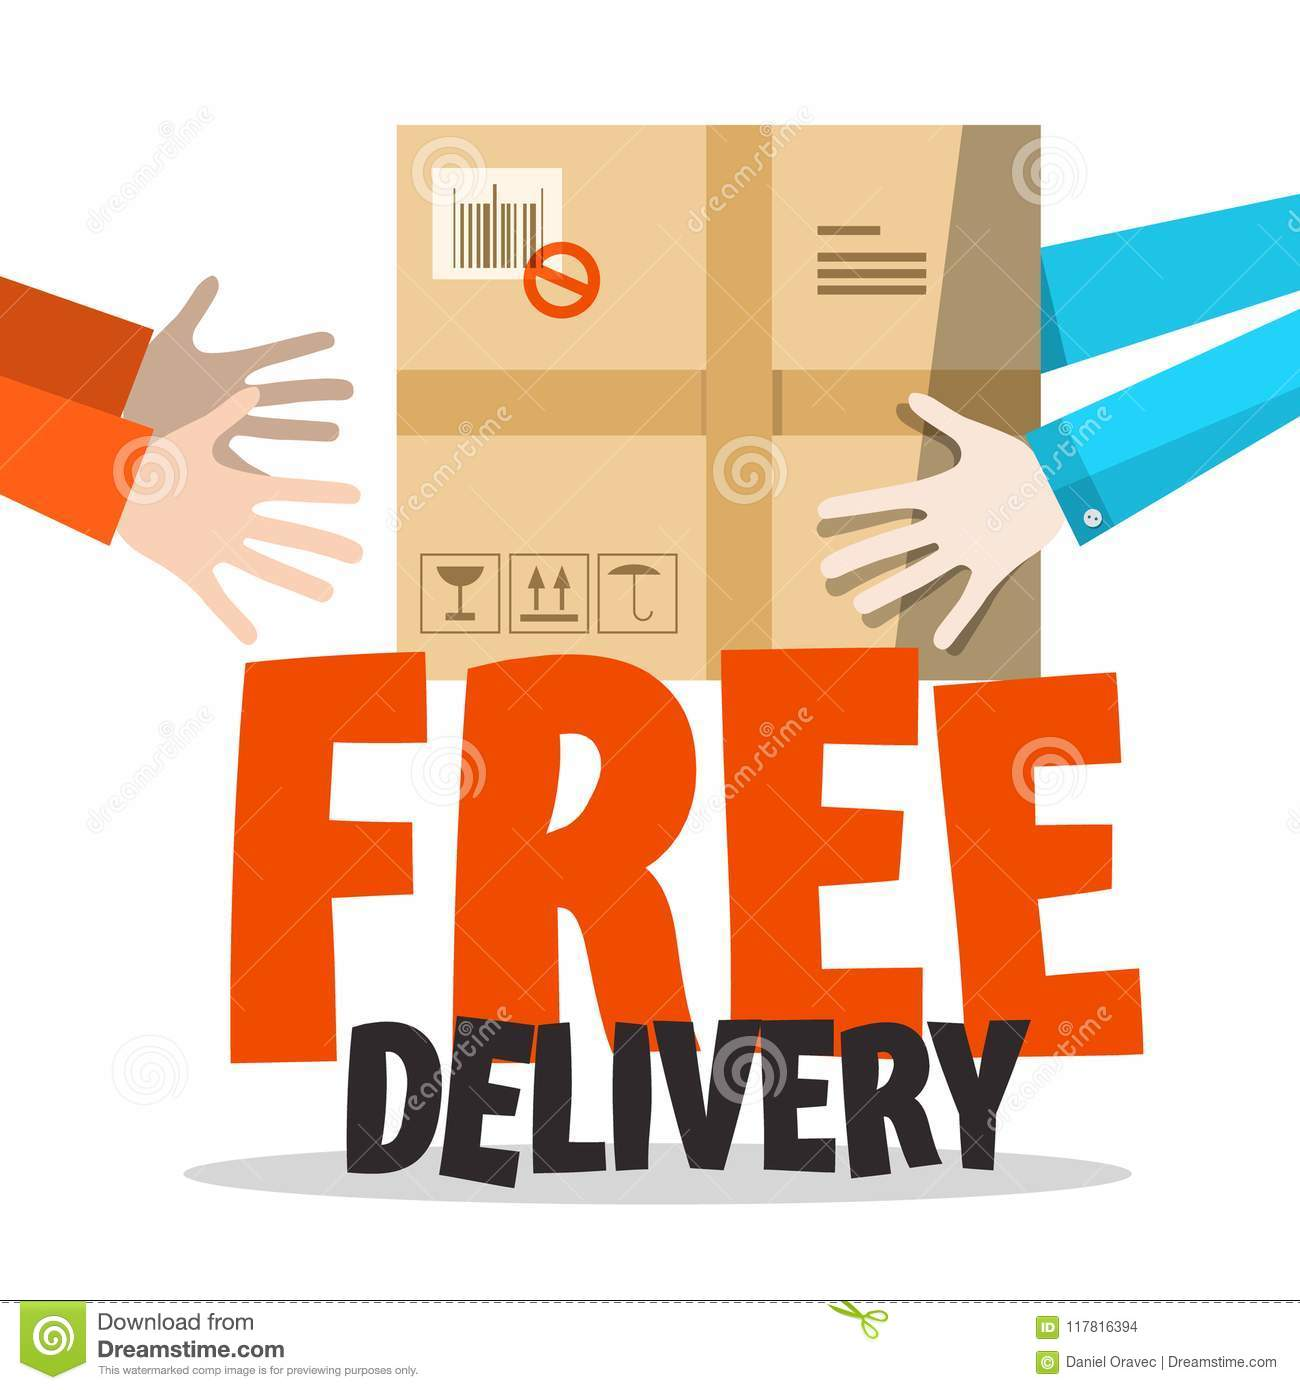 Free Delivery Symbol with Parcel in Human Hands